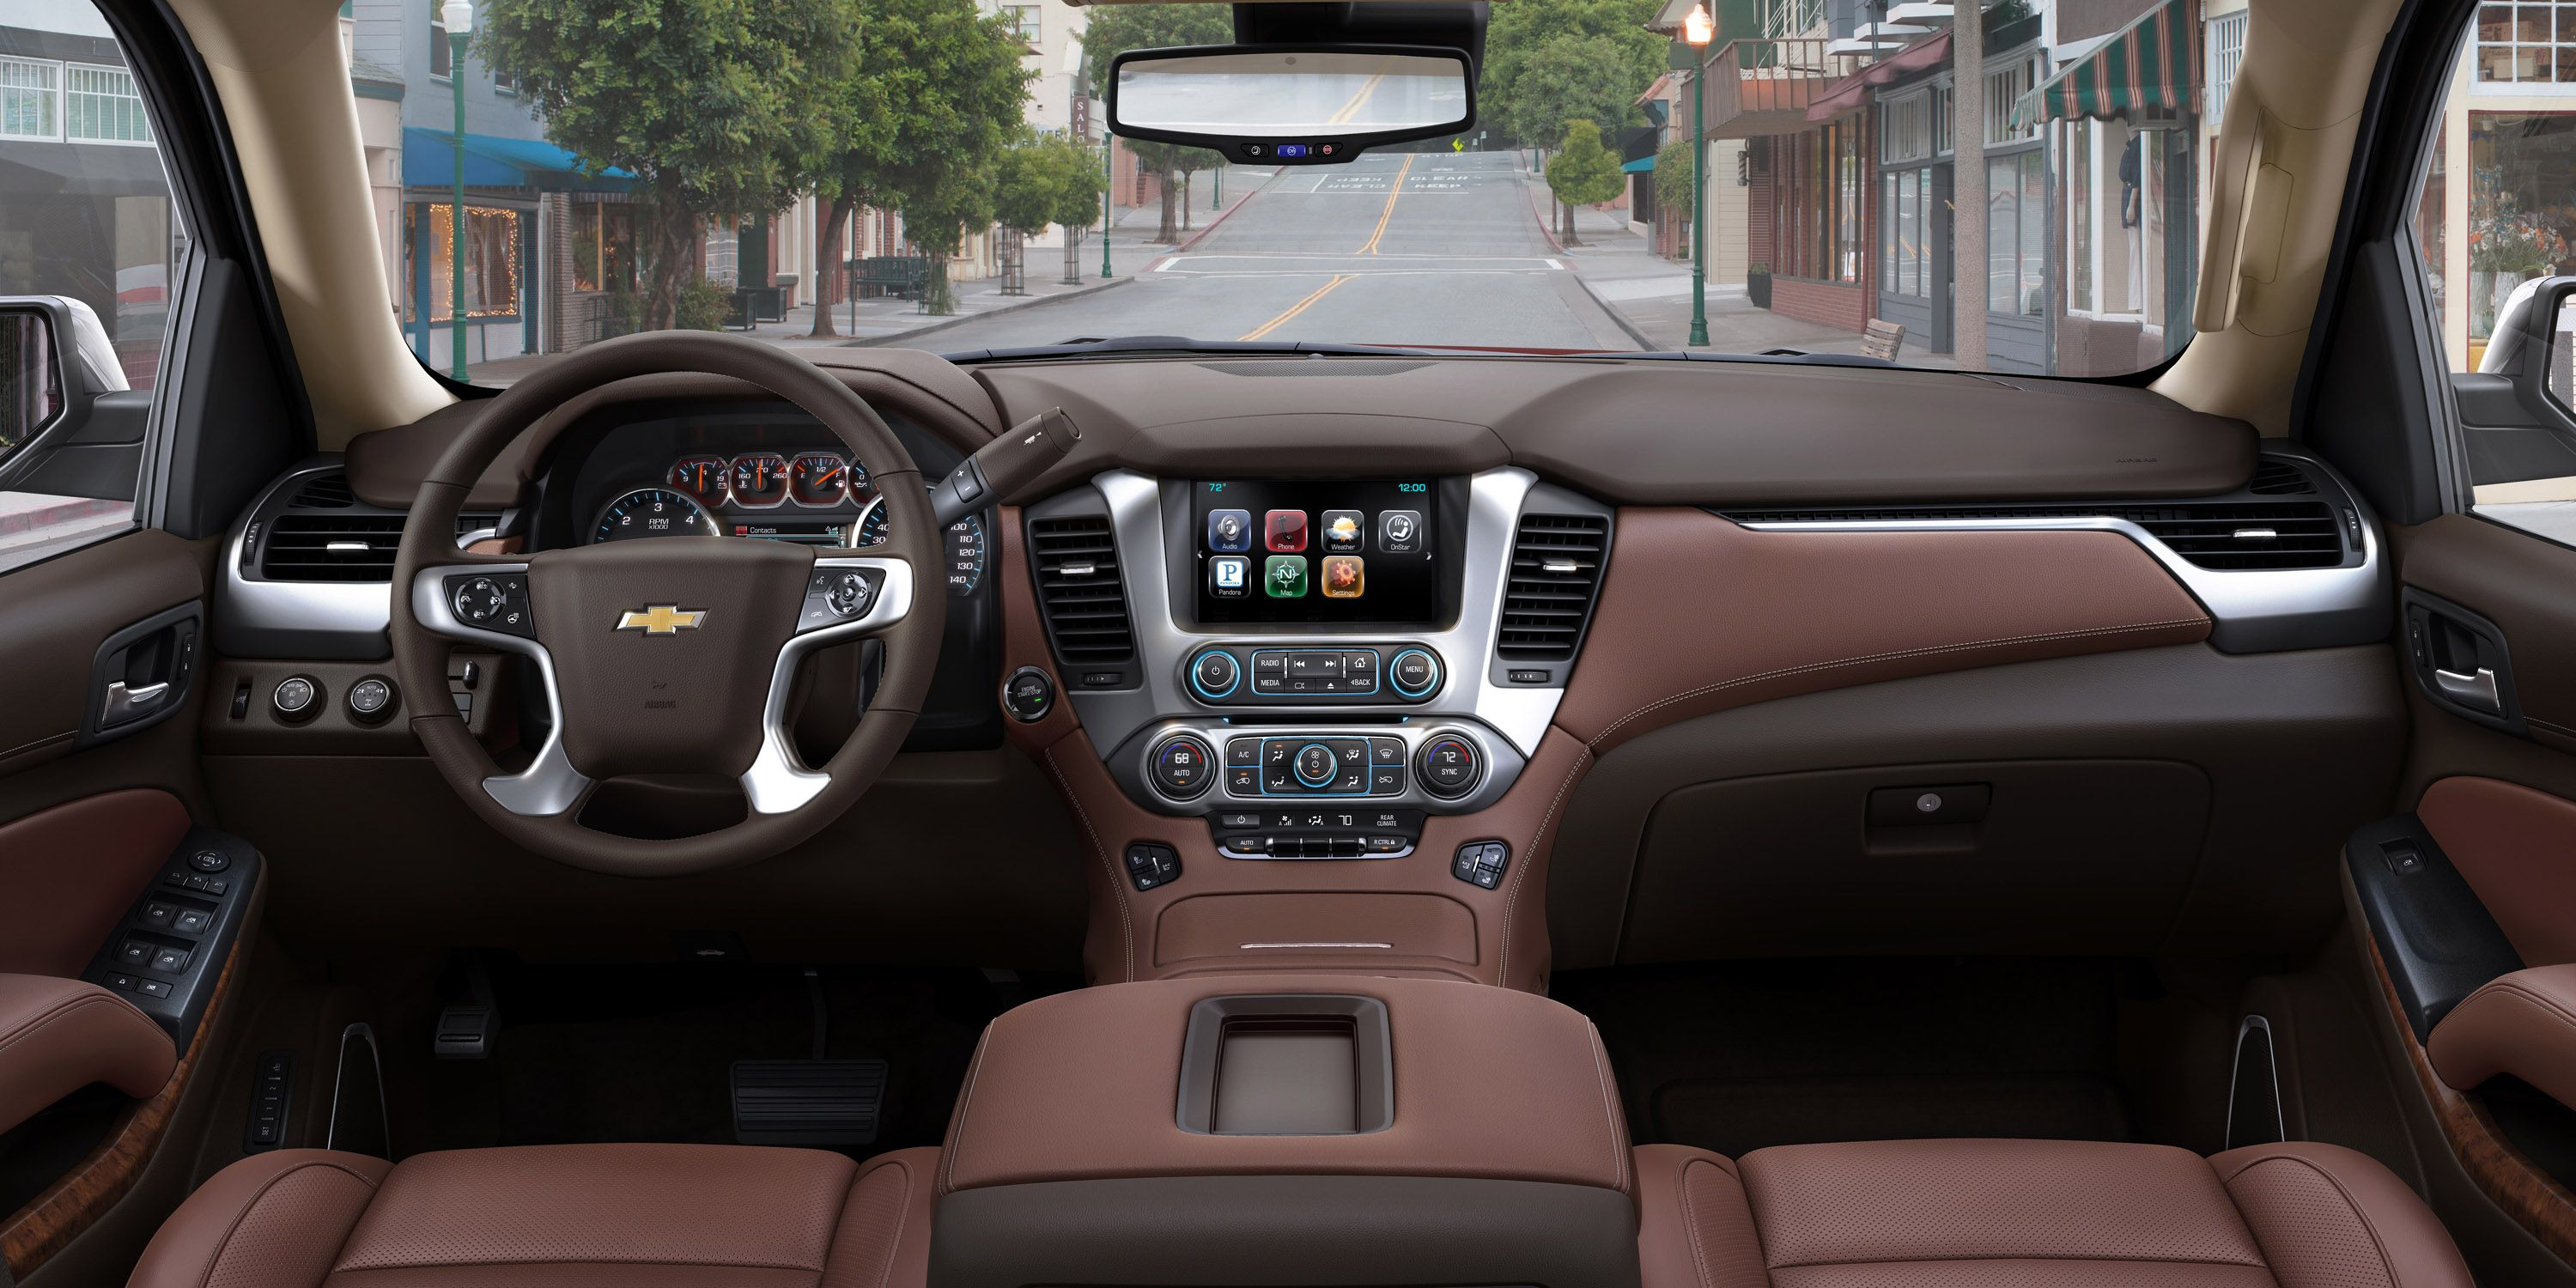 2015 chevrolet tahoe interior interior design pinterest